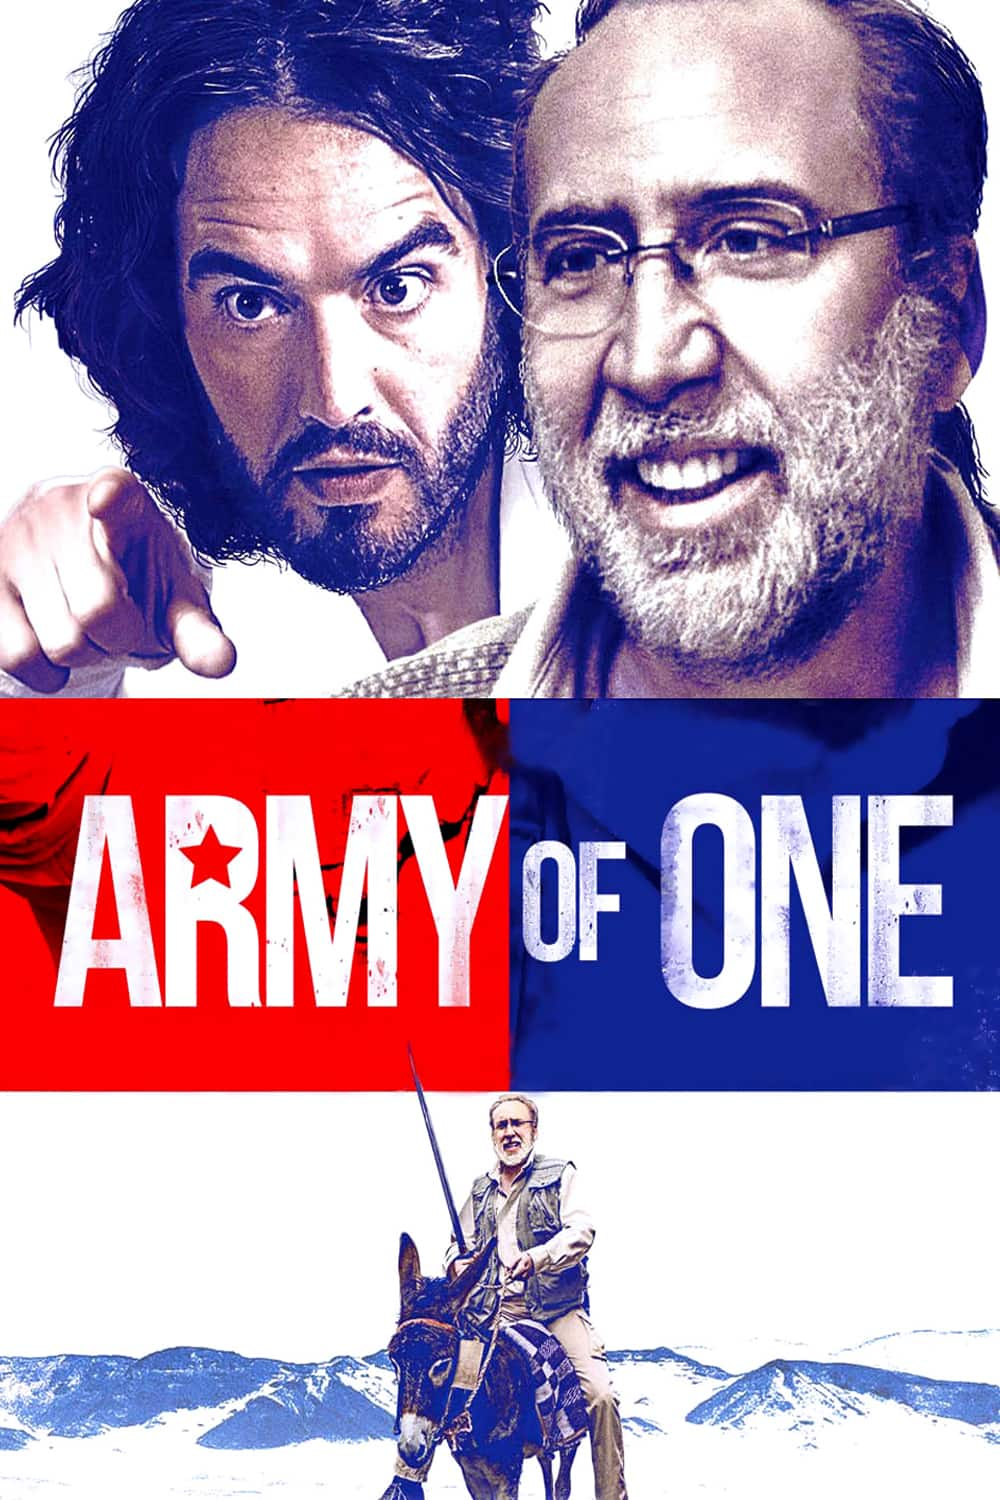 Army of One Film online på Viaplay.no